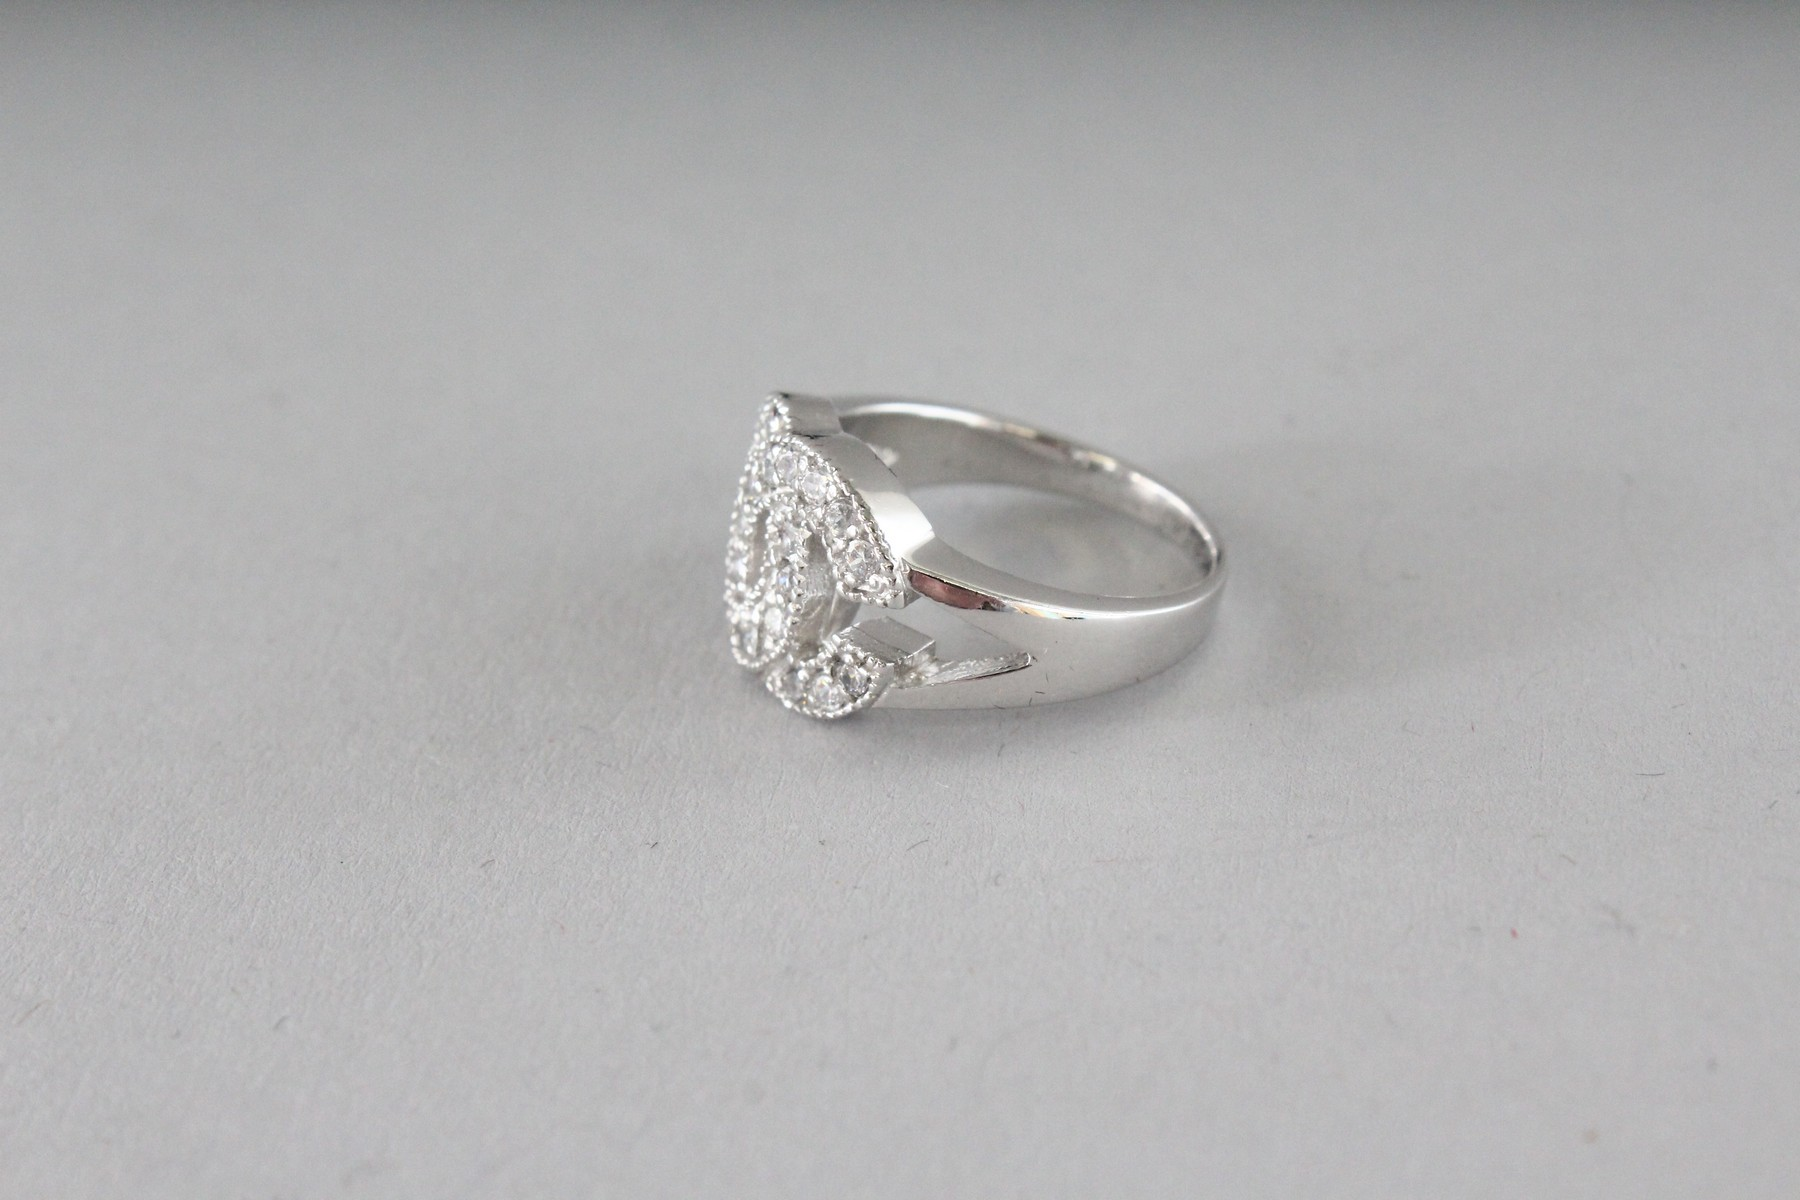 A CHANEL DESIGN SILVER AND CZ DOUBLE C RING. - Image 3 of 4